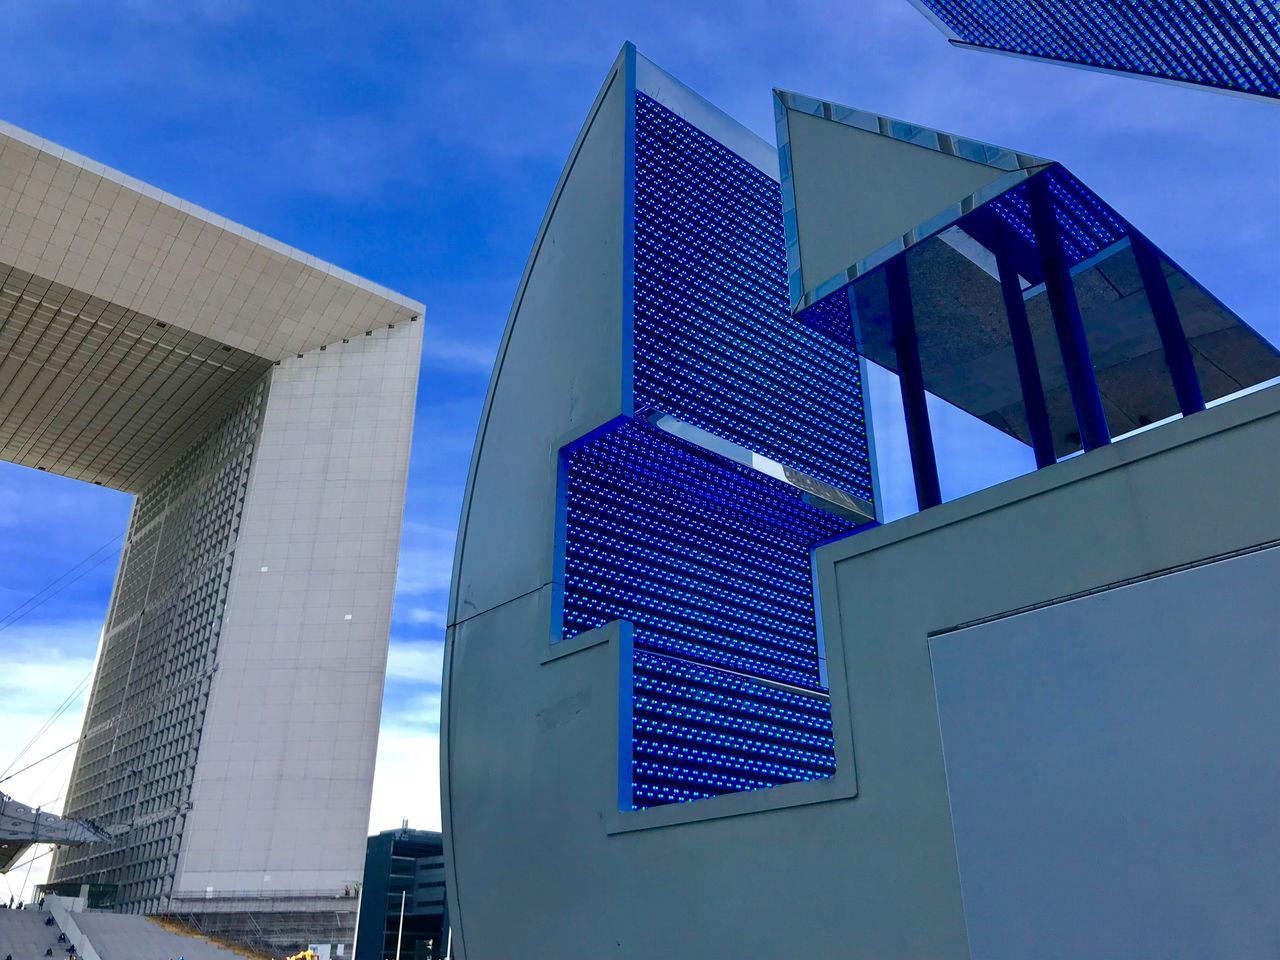 architecture, built structure, low angle view, modern, building exterior, outdoors, sky, day, blue, no people, city